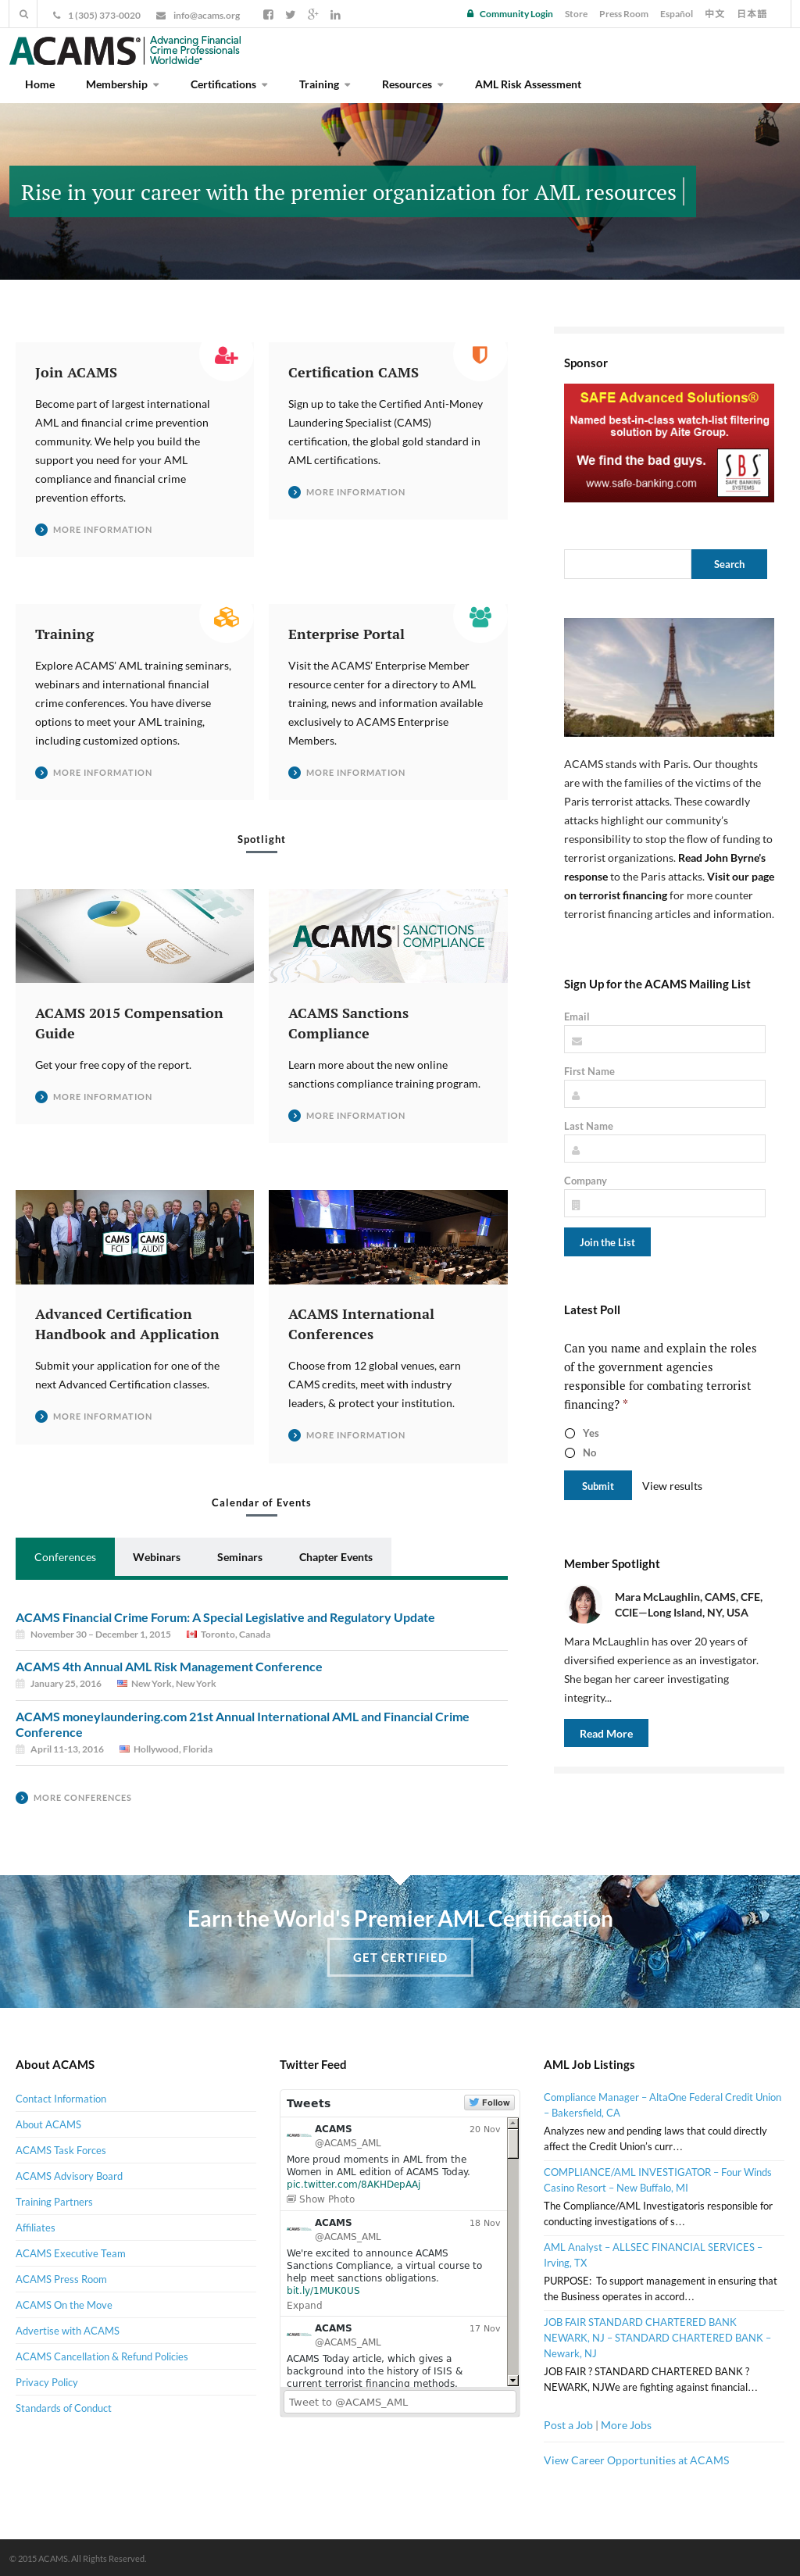 ACAMS Competitors, Revenue and Employees - Owler Company Profile